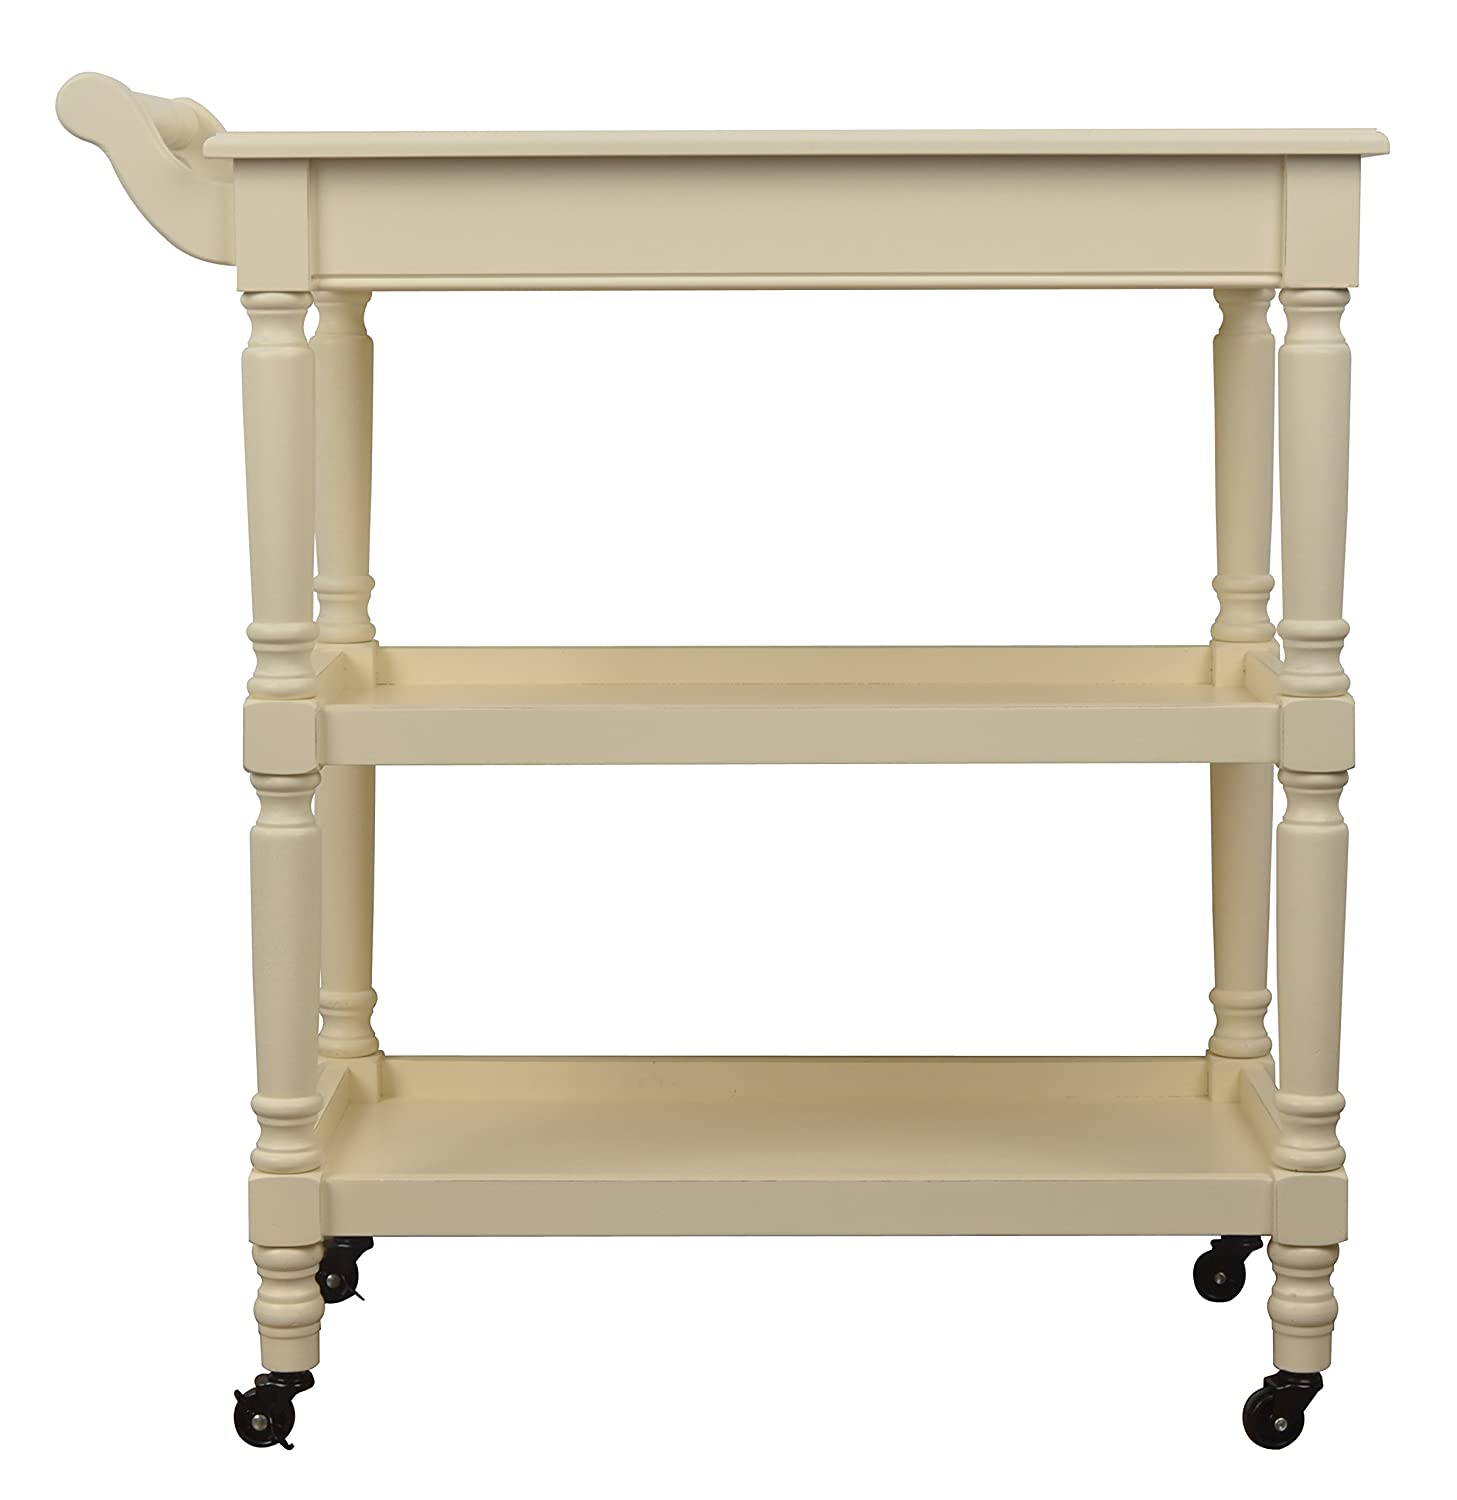 Décor Therapy FR6329 Rolling bar Cart with Open Storage, White